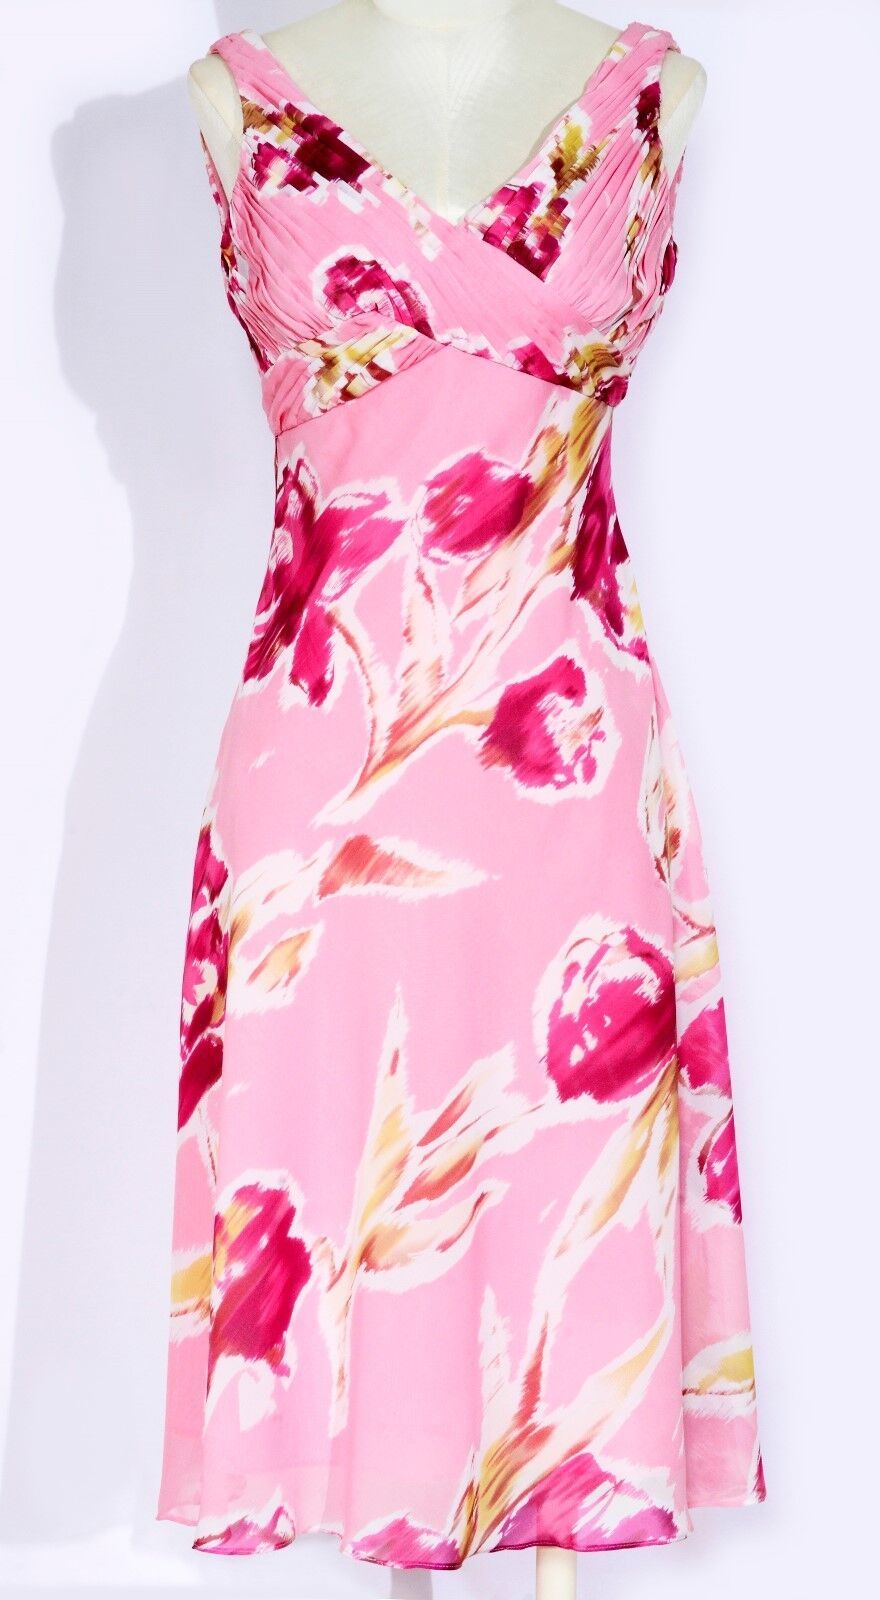 NWT ADRIANNA PAPELL FLAMINGO PINK FLORAL PRINT LINED EMPIRE WAIST DRESS SIZE 4